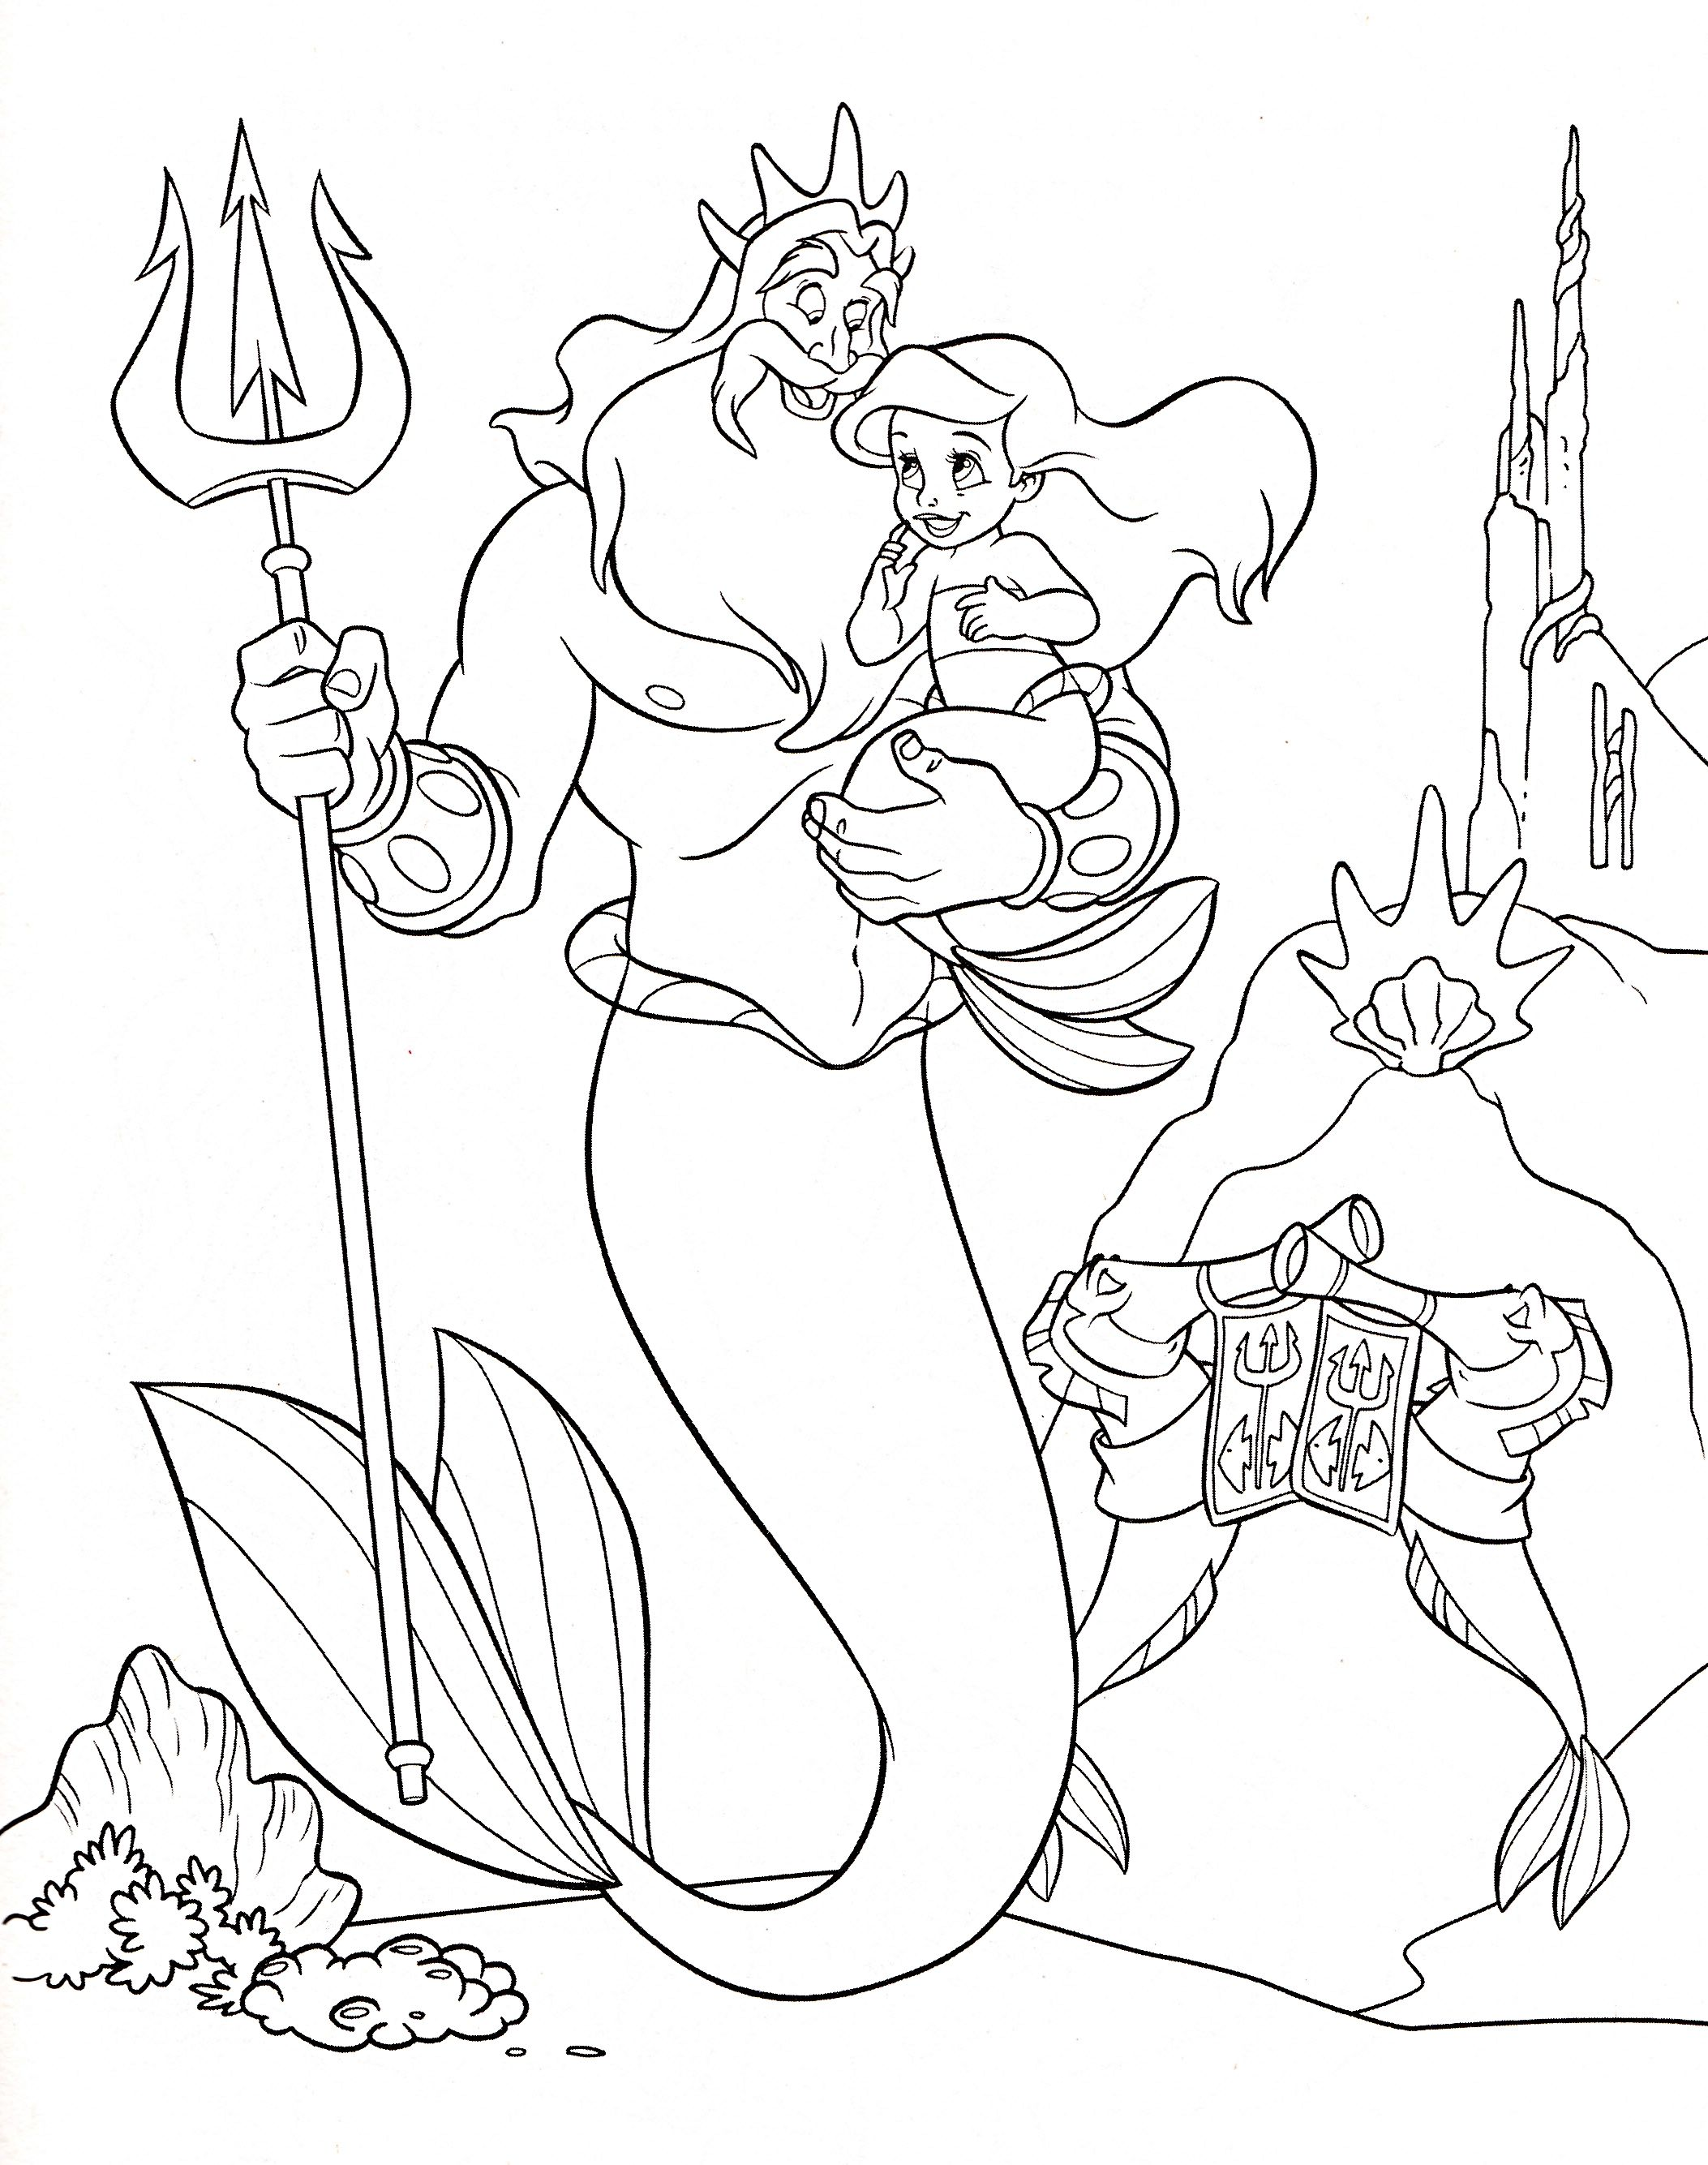 Ariel princess coloring pages free - Walt Disney Coloring Page Of King Triton And Princess Ariel From The Little Mermaid Ariel S Beginning Hd Wallpaper And Background Photos Of Walt Disney